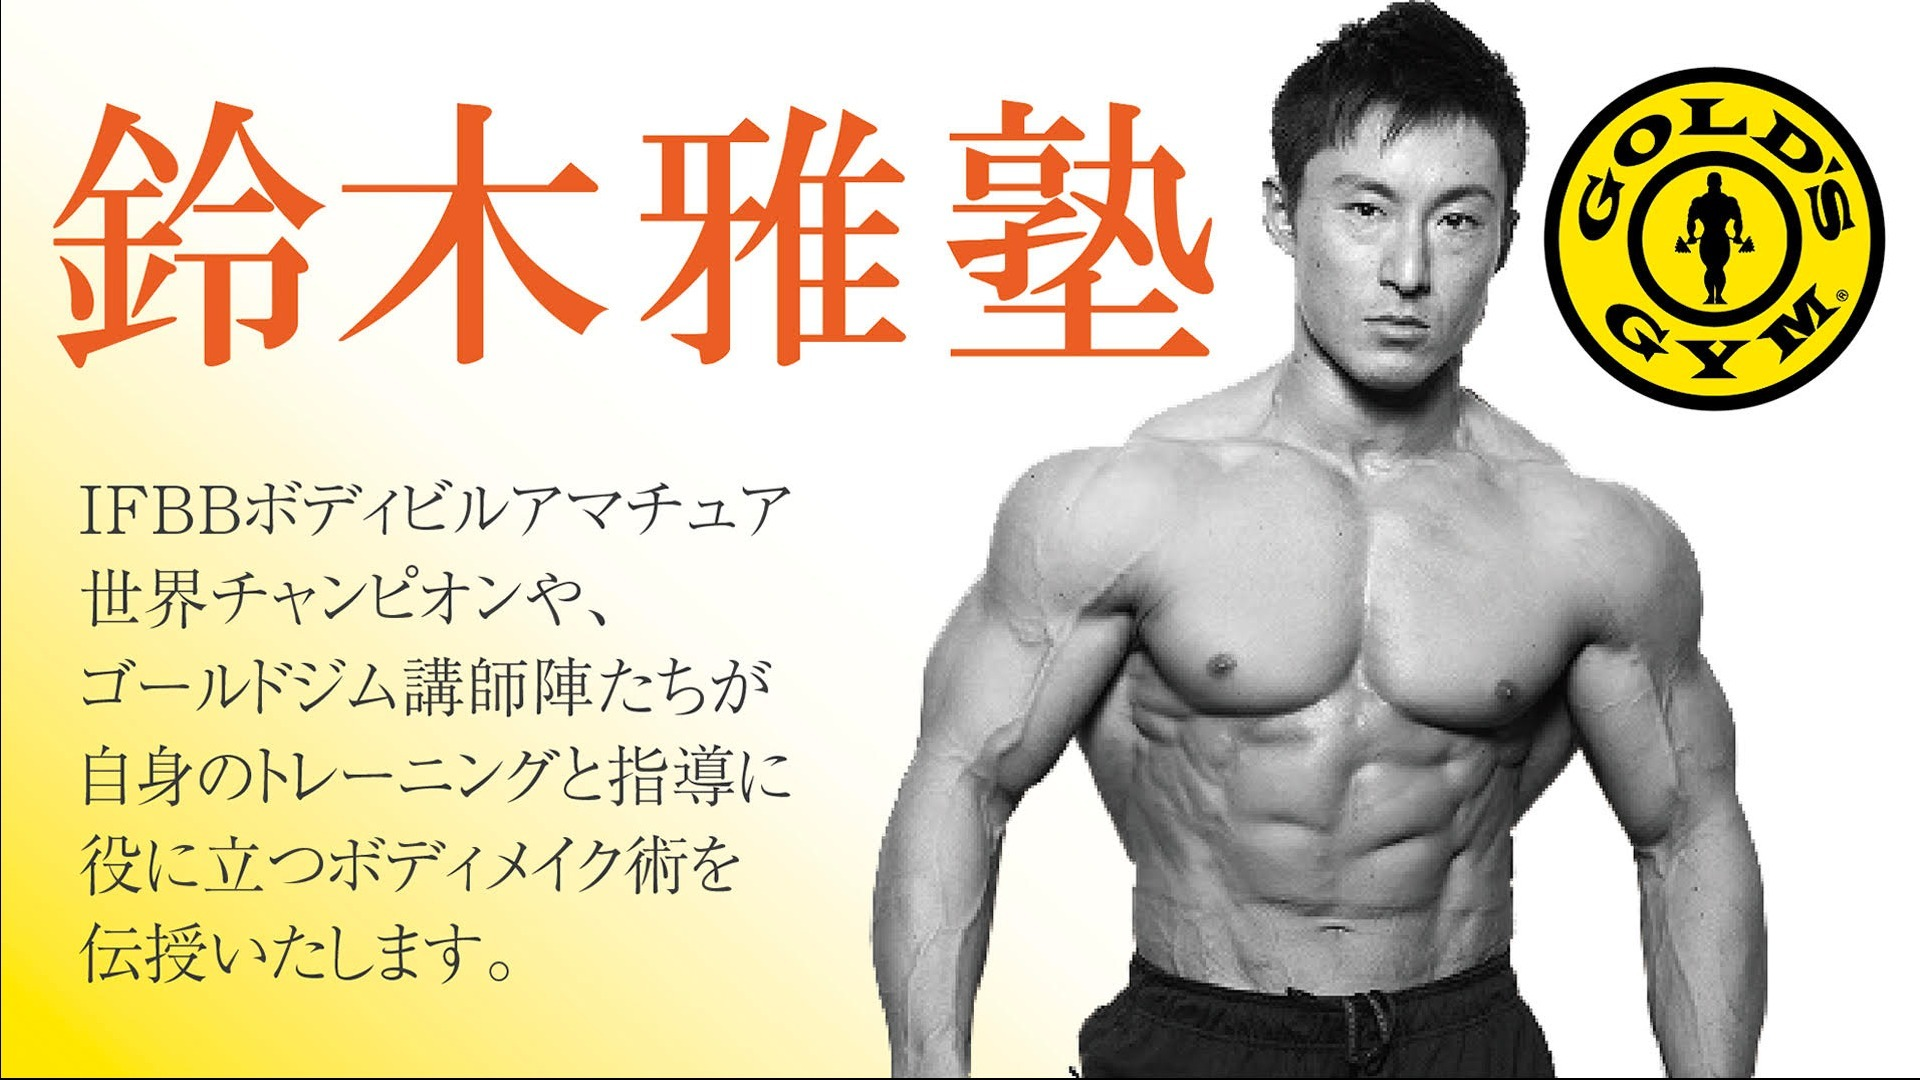 鈴木雅塾 ~Presents by GOLD'S GYM~